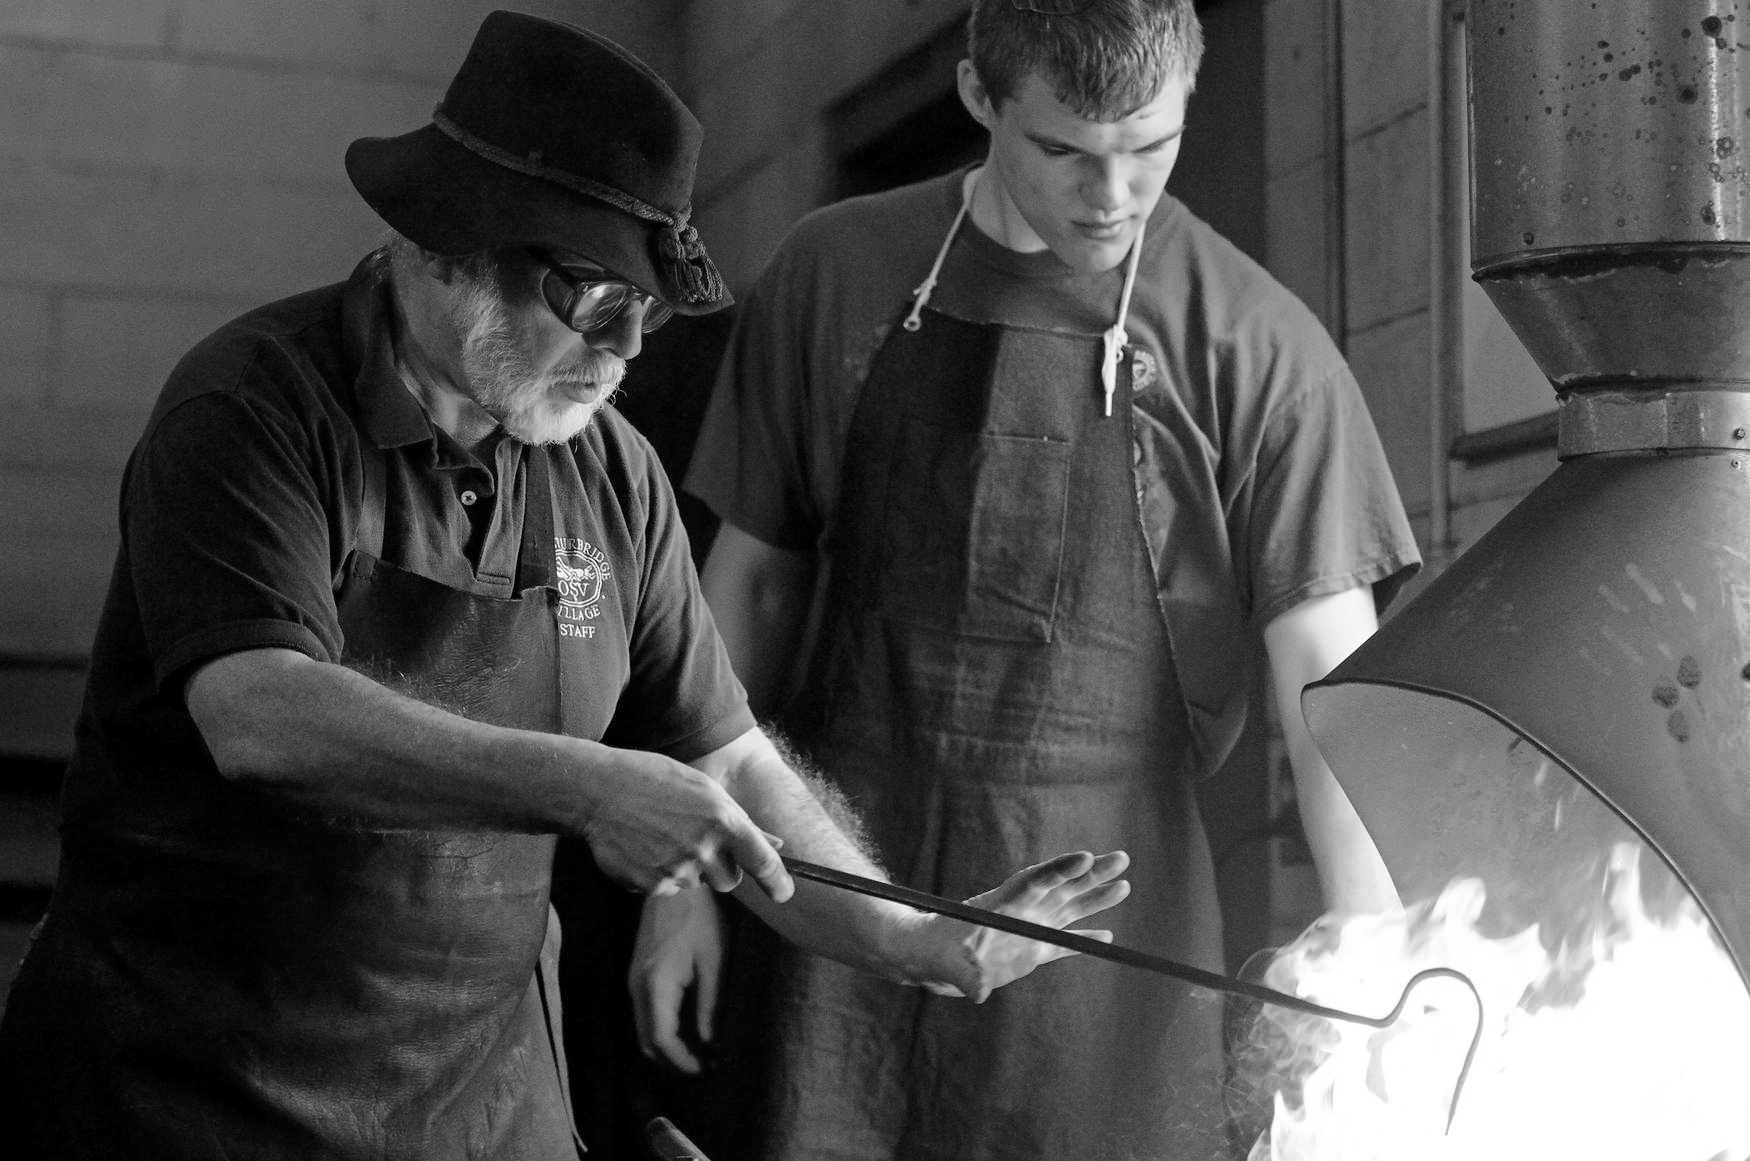 A BLACKSMITH CHANGES A LIFE IN A SINGLE MOMENT